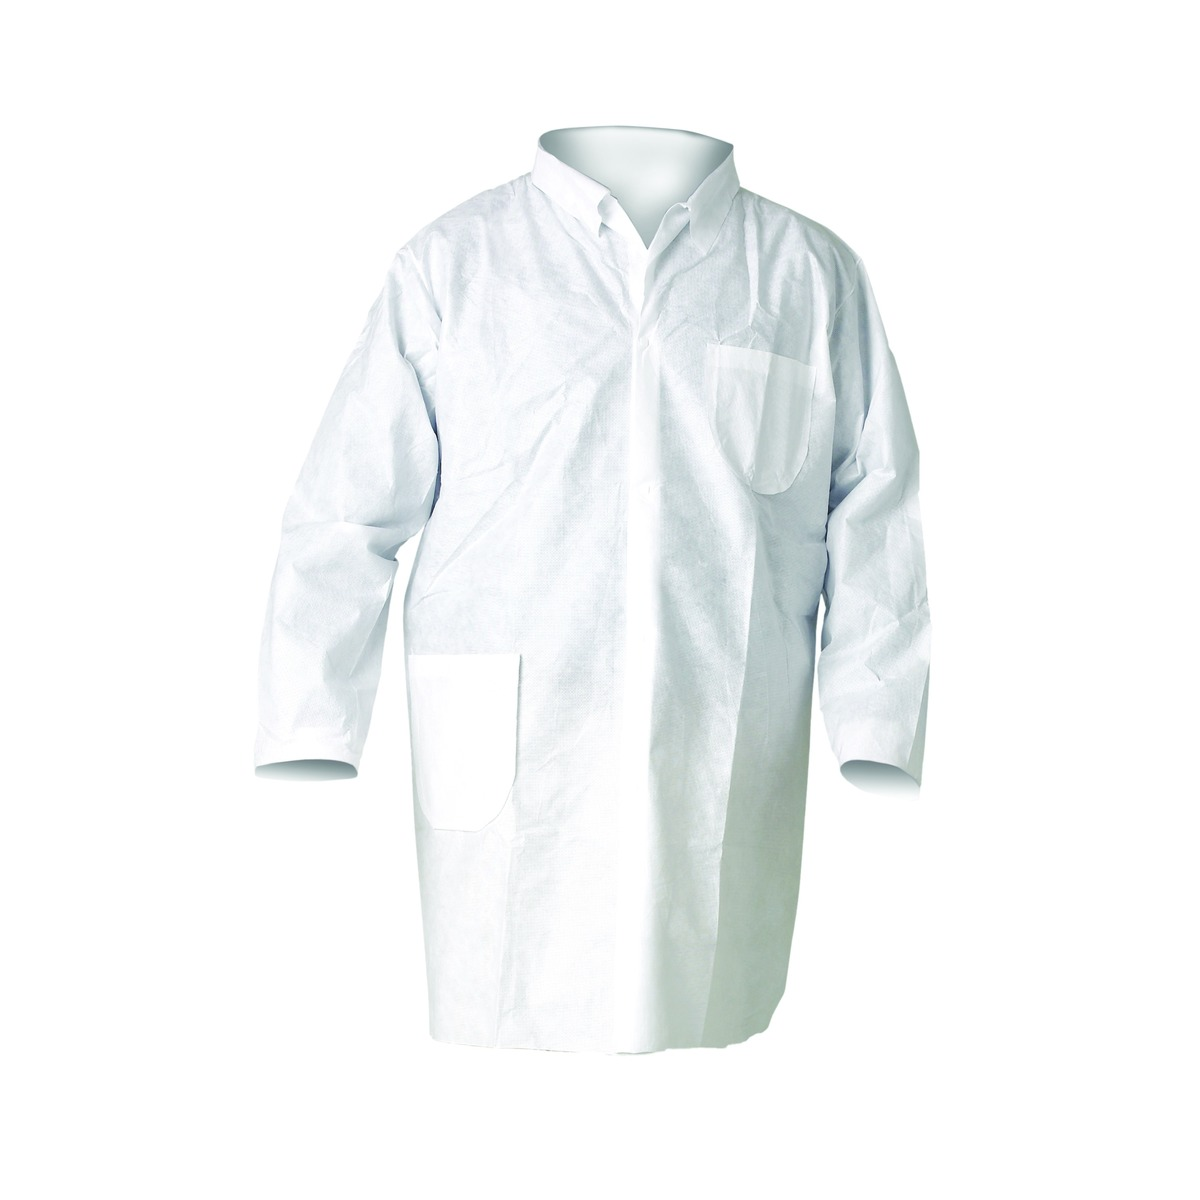 Disposable lab coat, large